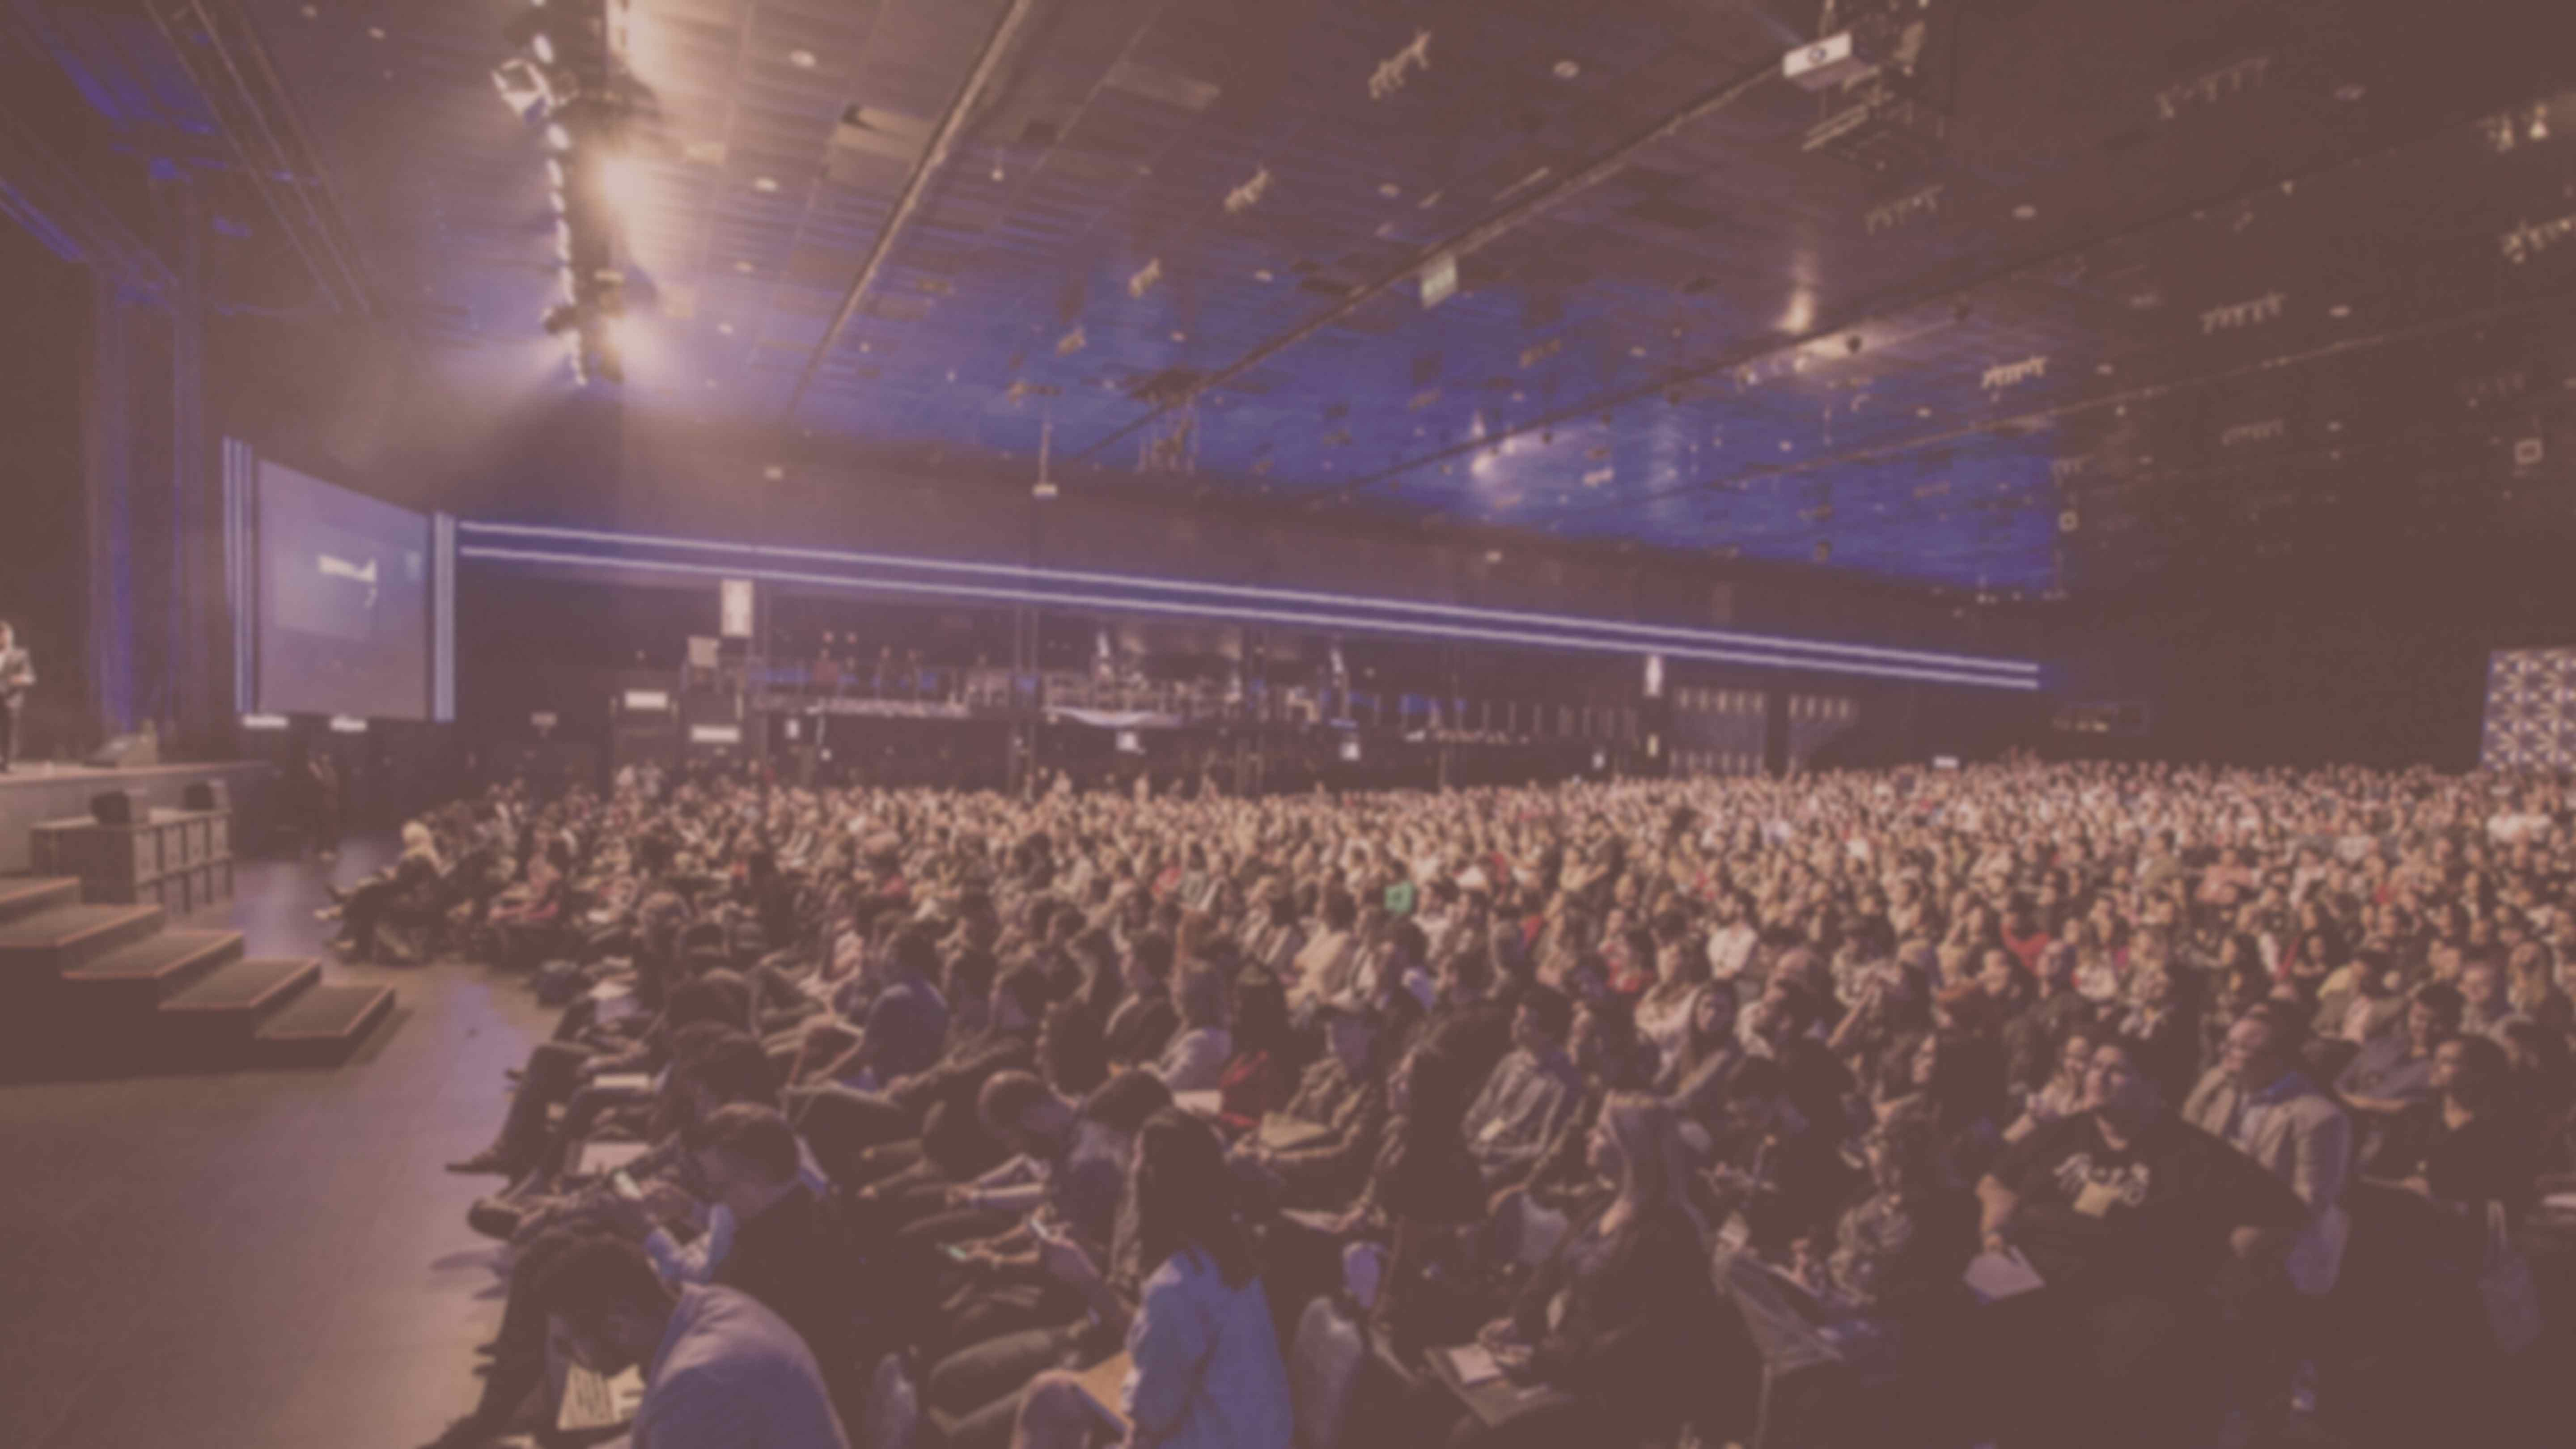 Audience of hundreds of people facing the stage at a conference